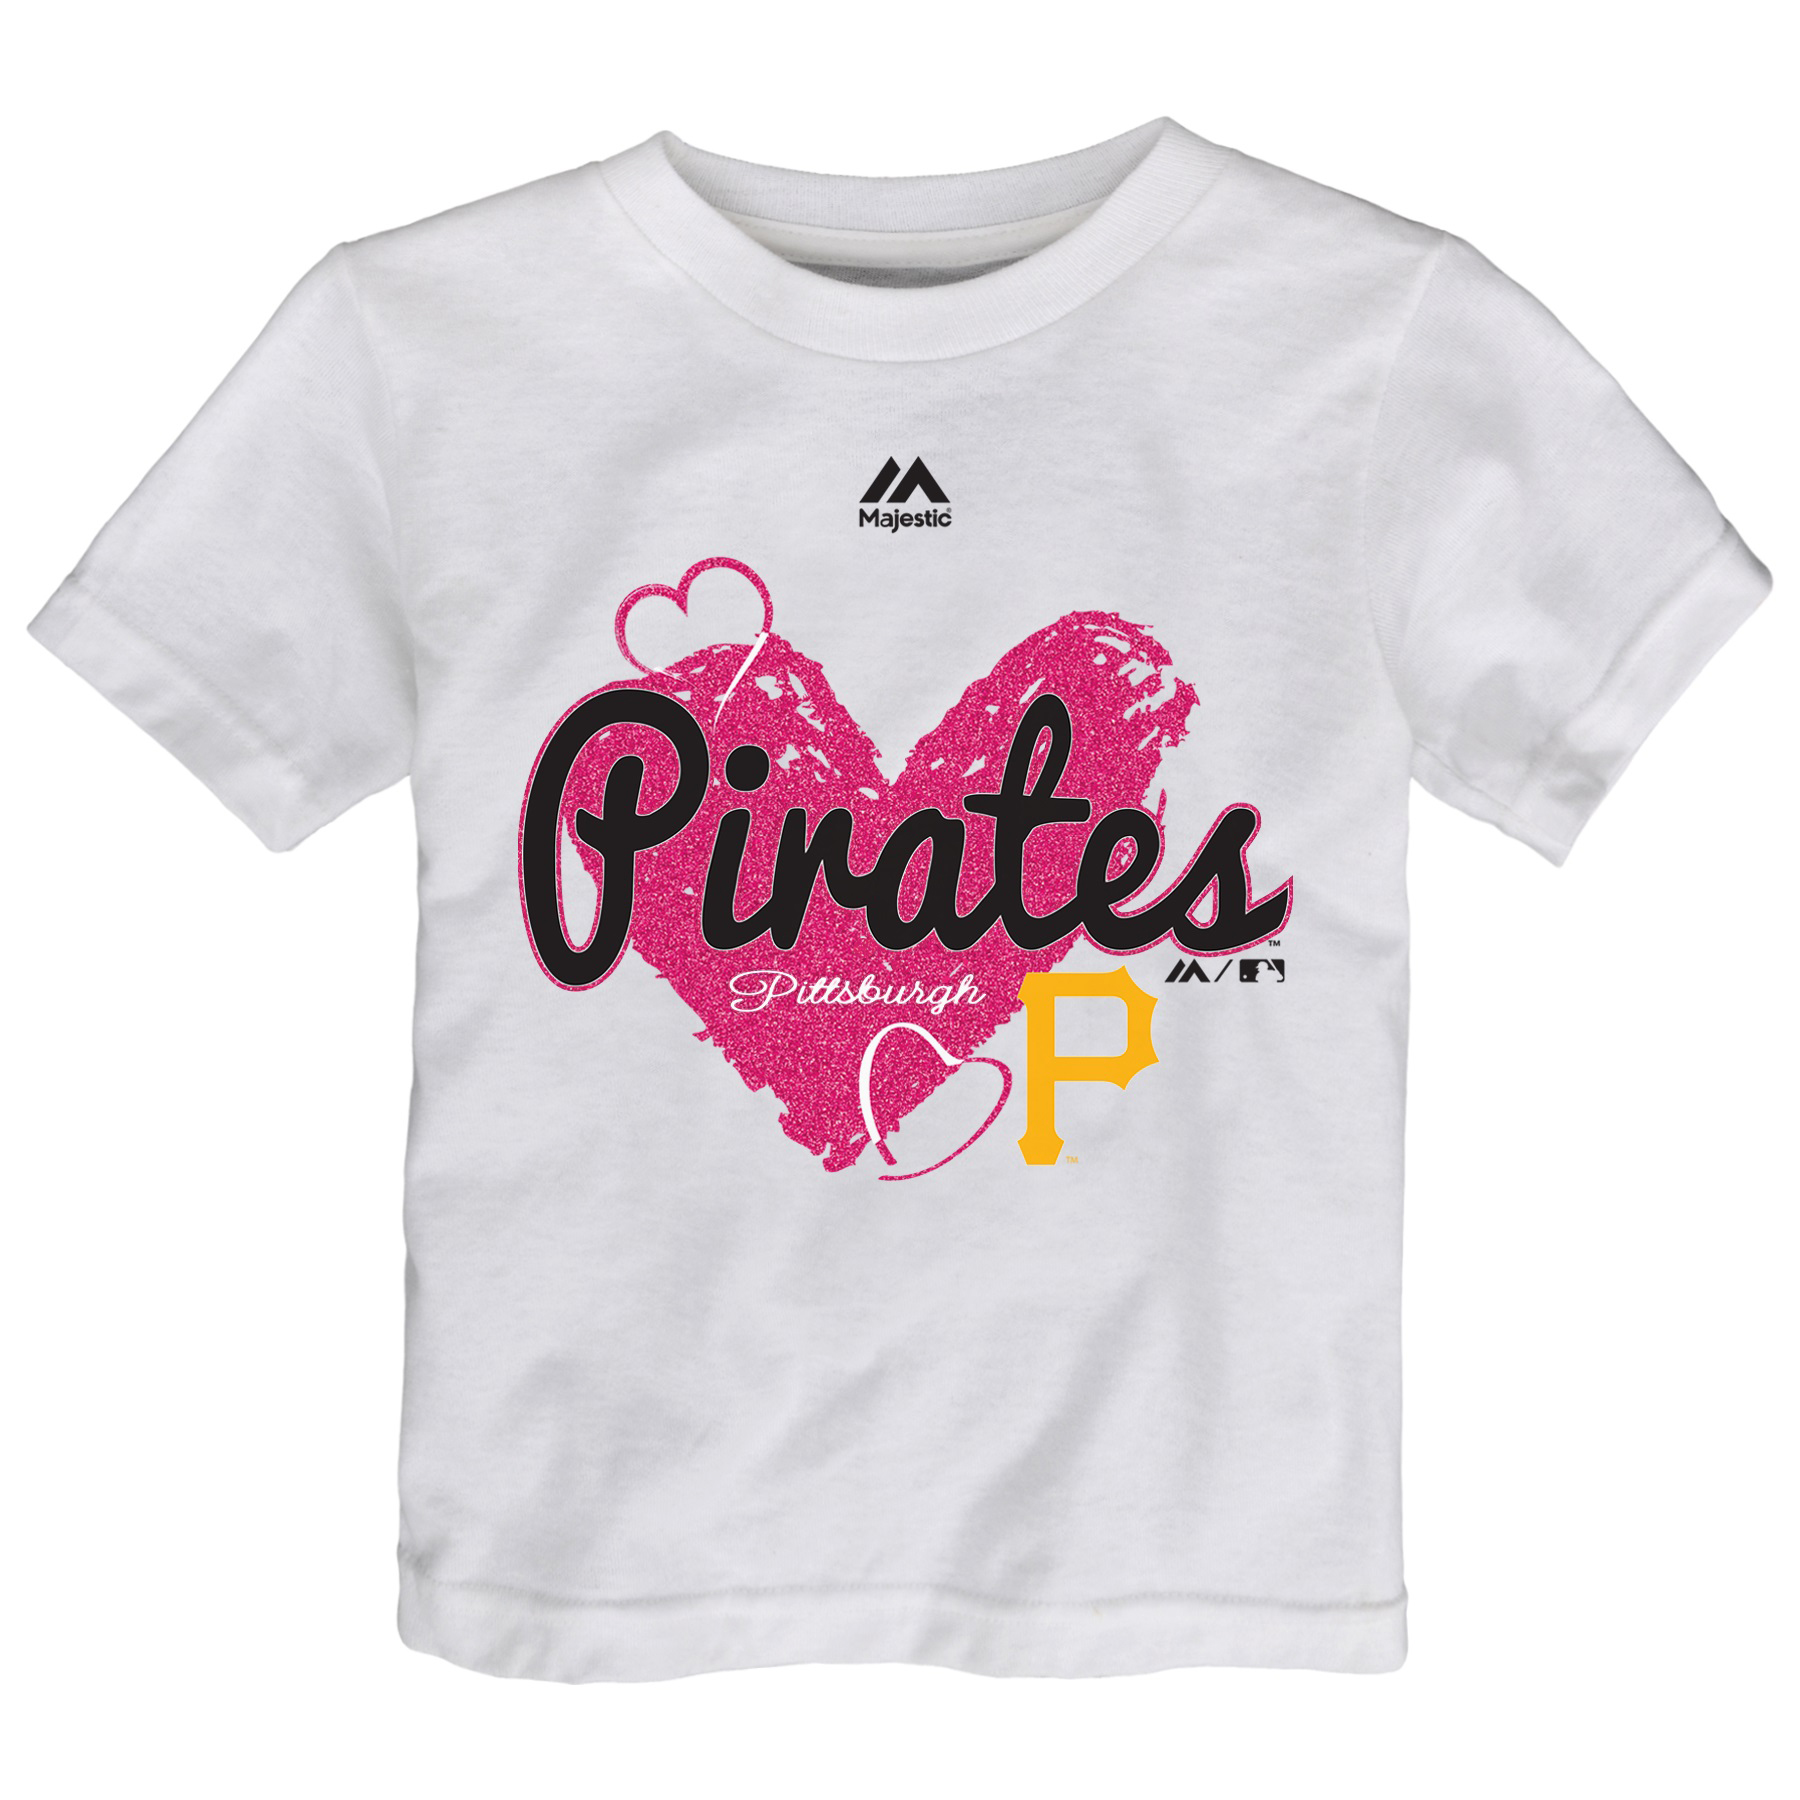 Pittsburgh Pirates Majestic Girls Toddler Triple Heart T-Shirt - White